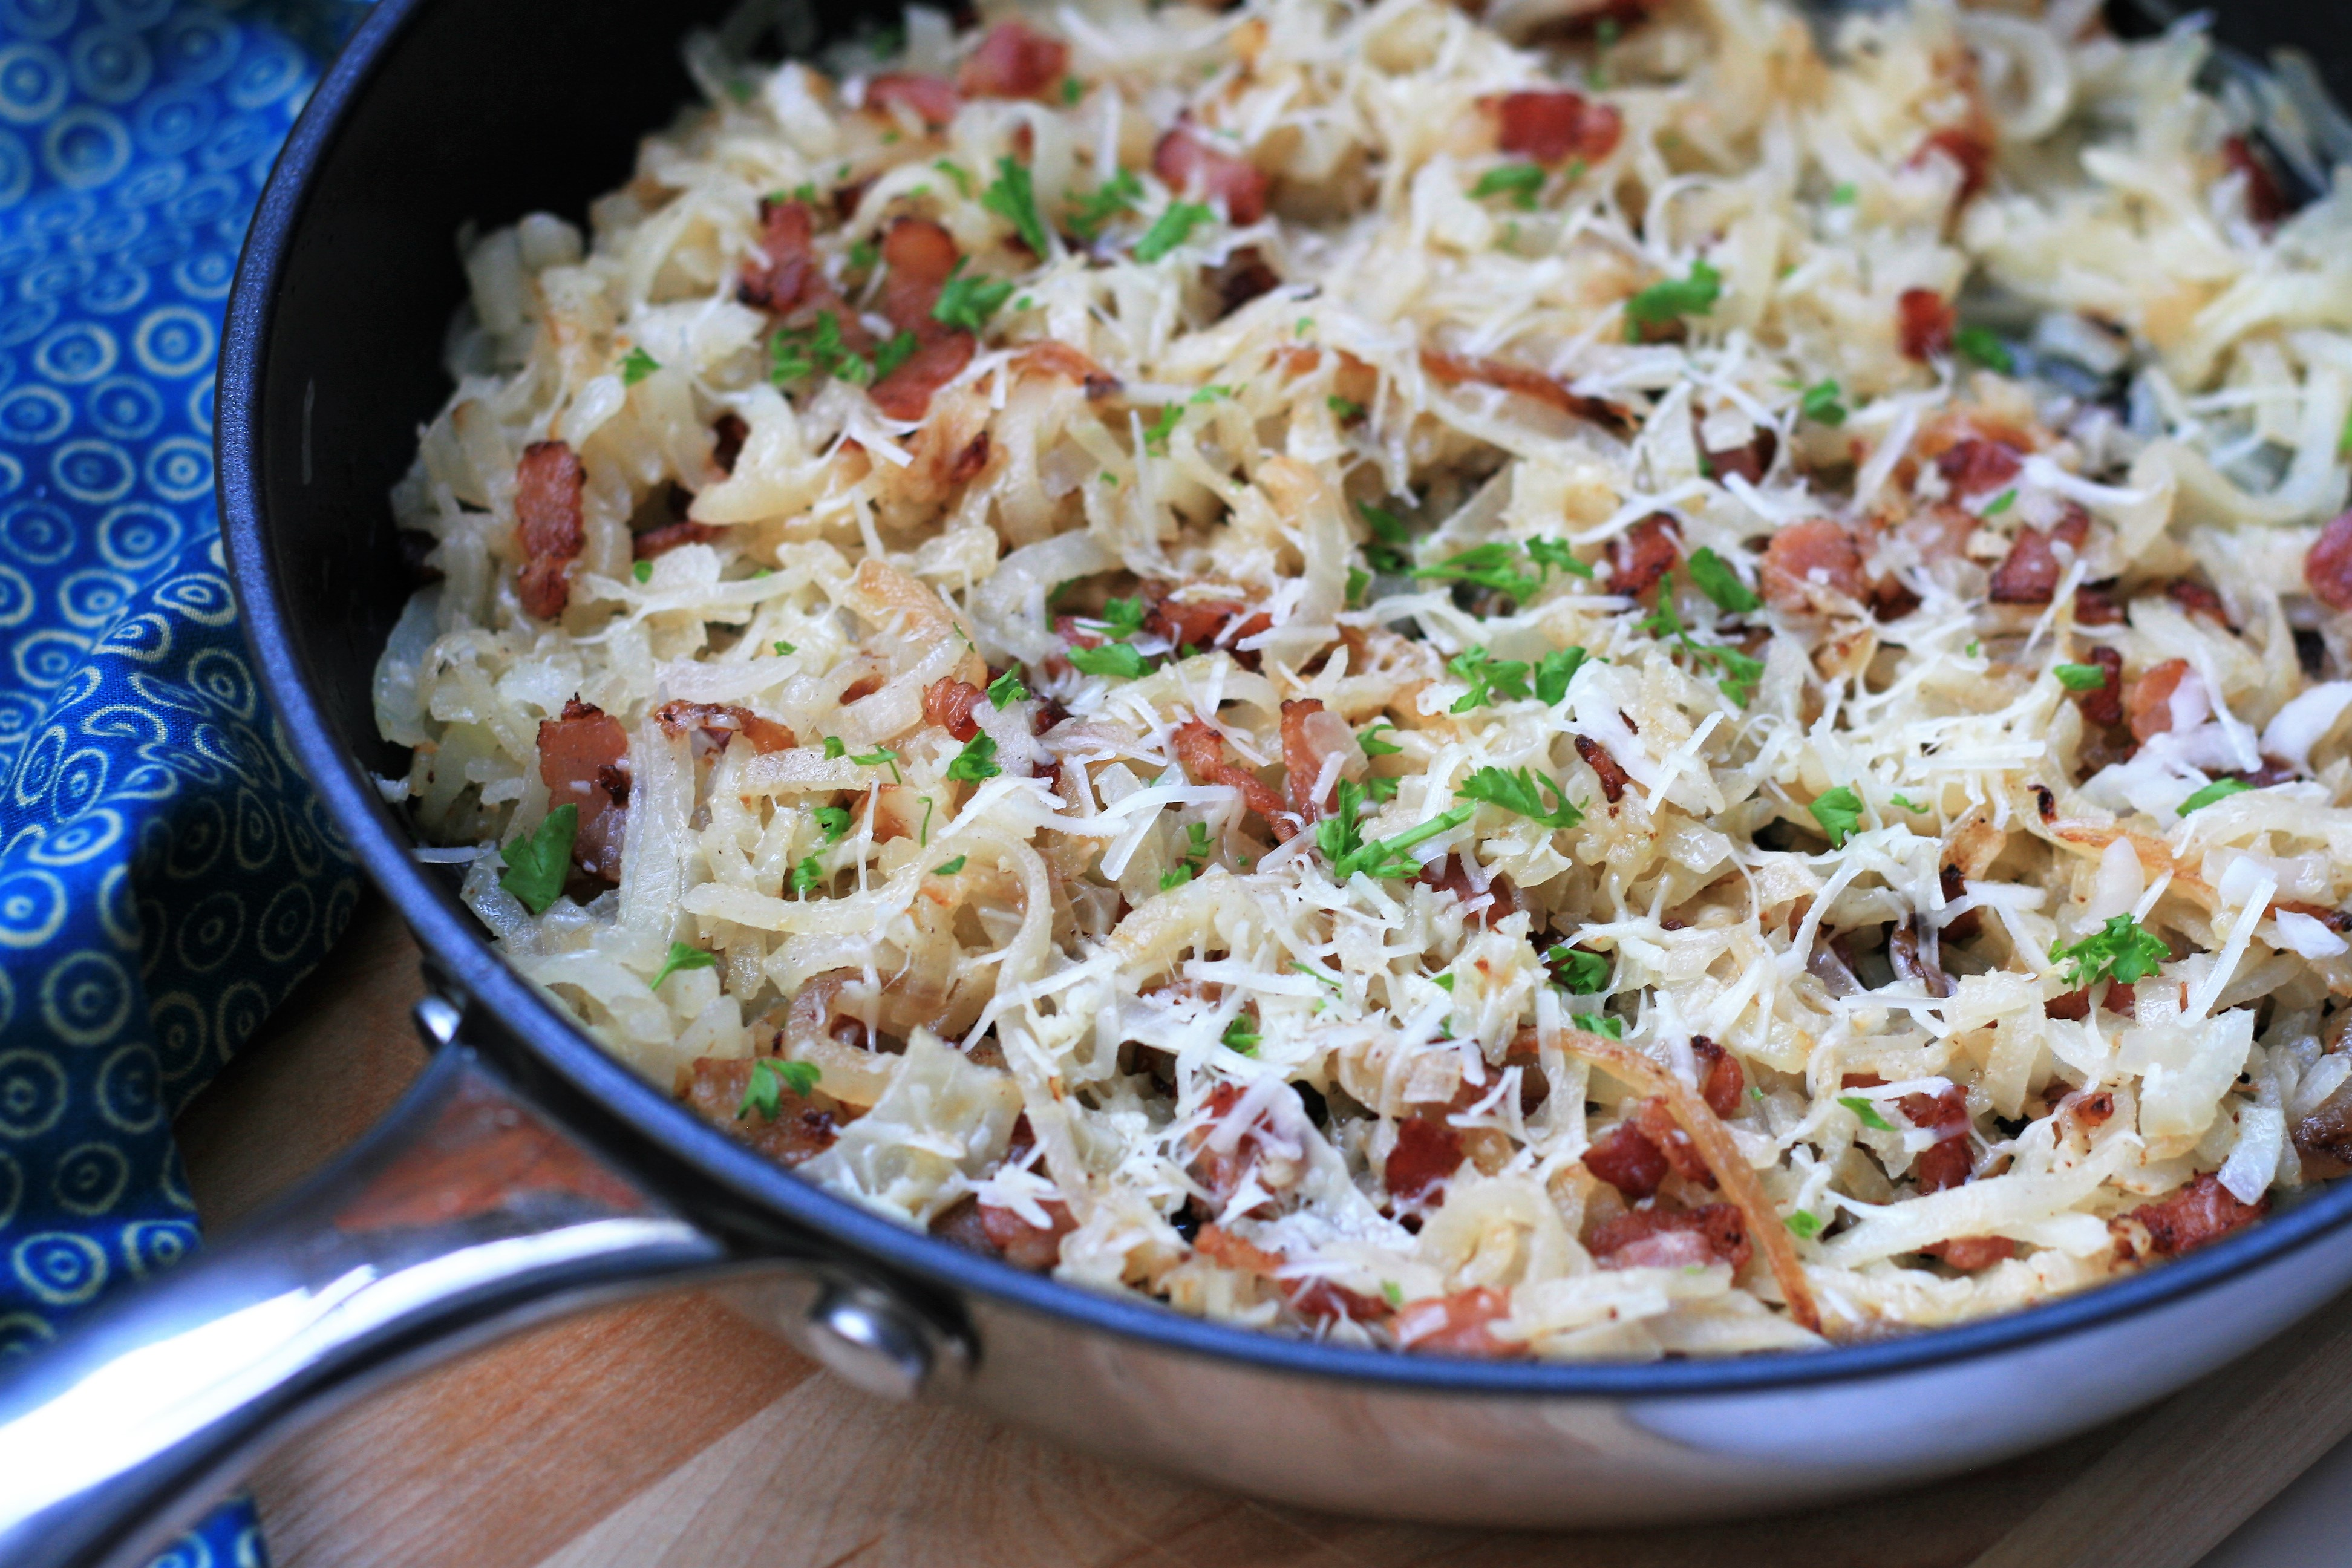 Kohlrabi Noodles with Bacon and Parmesan